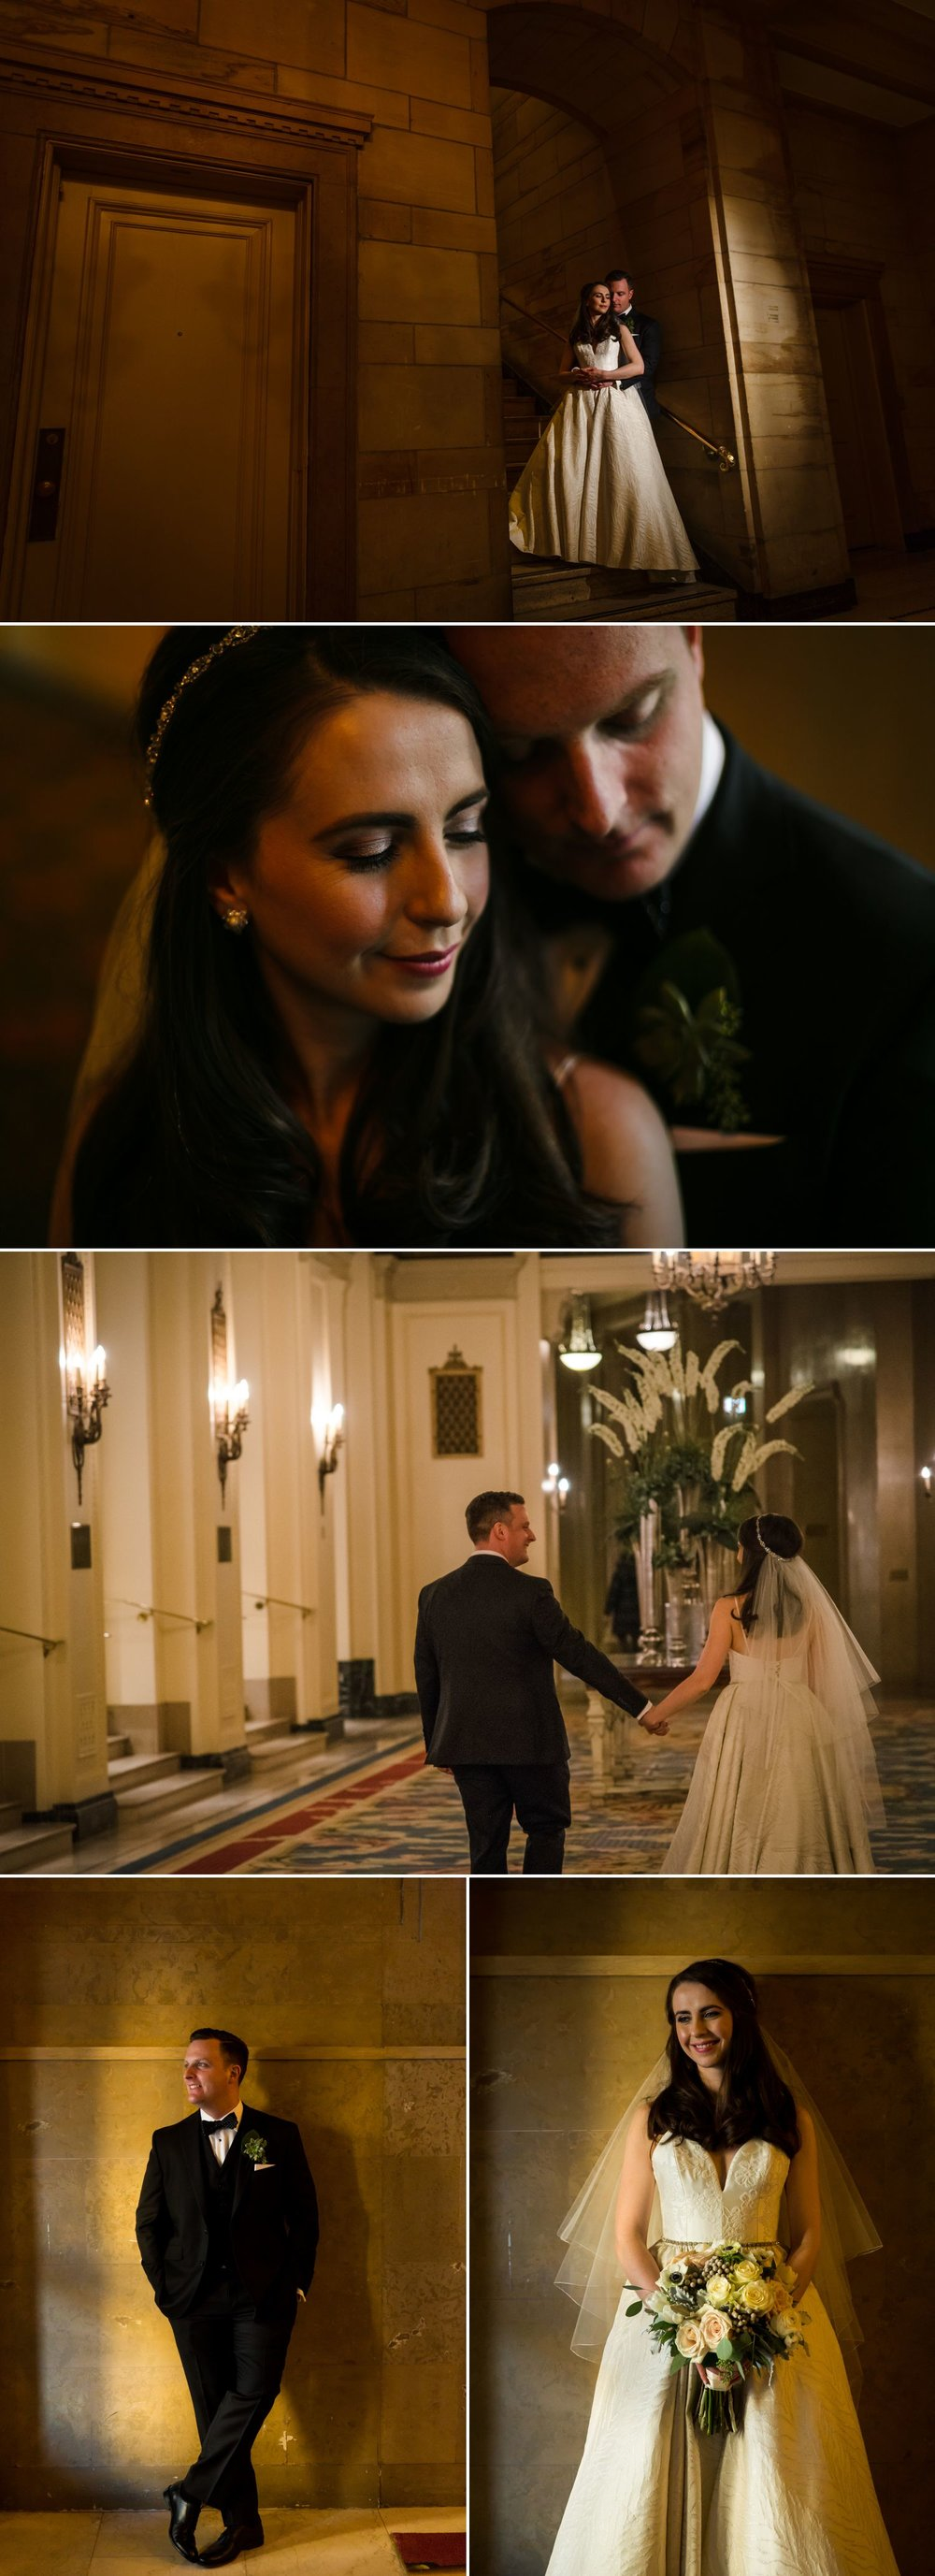 Portraits of the bride and groom taken inside the Chateau Laurier in downtown Ottawa